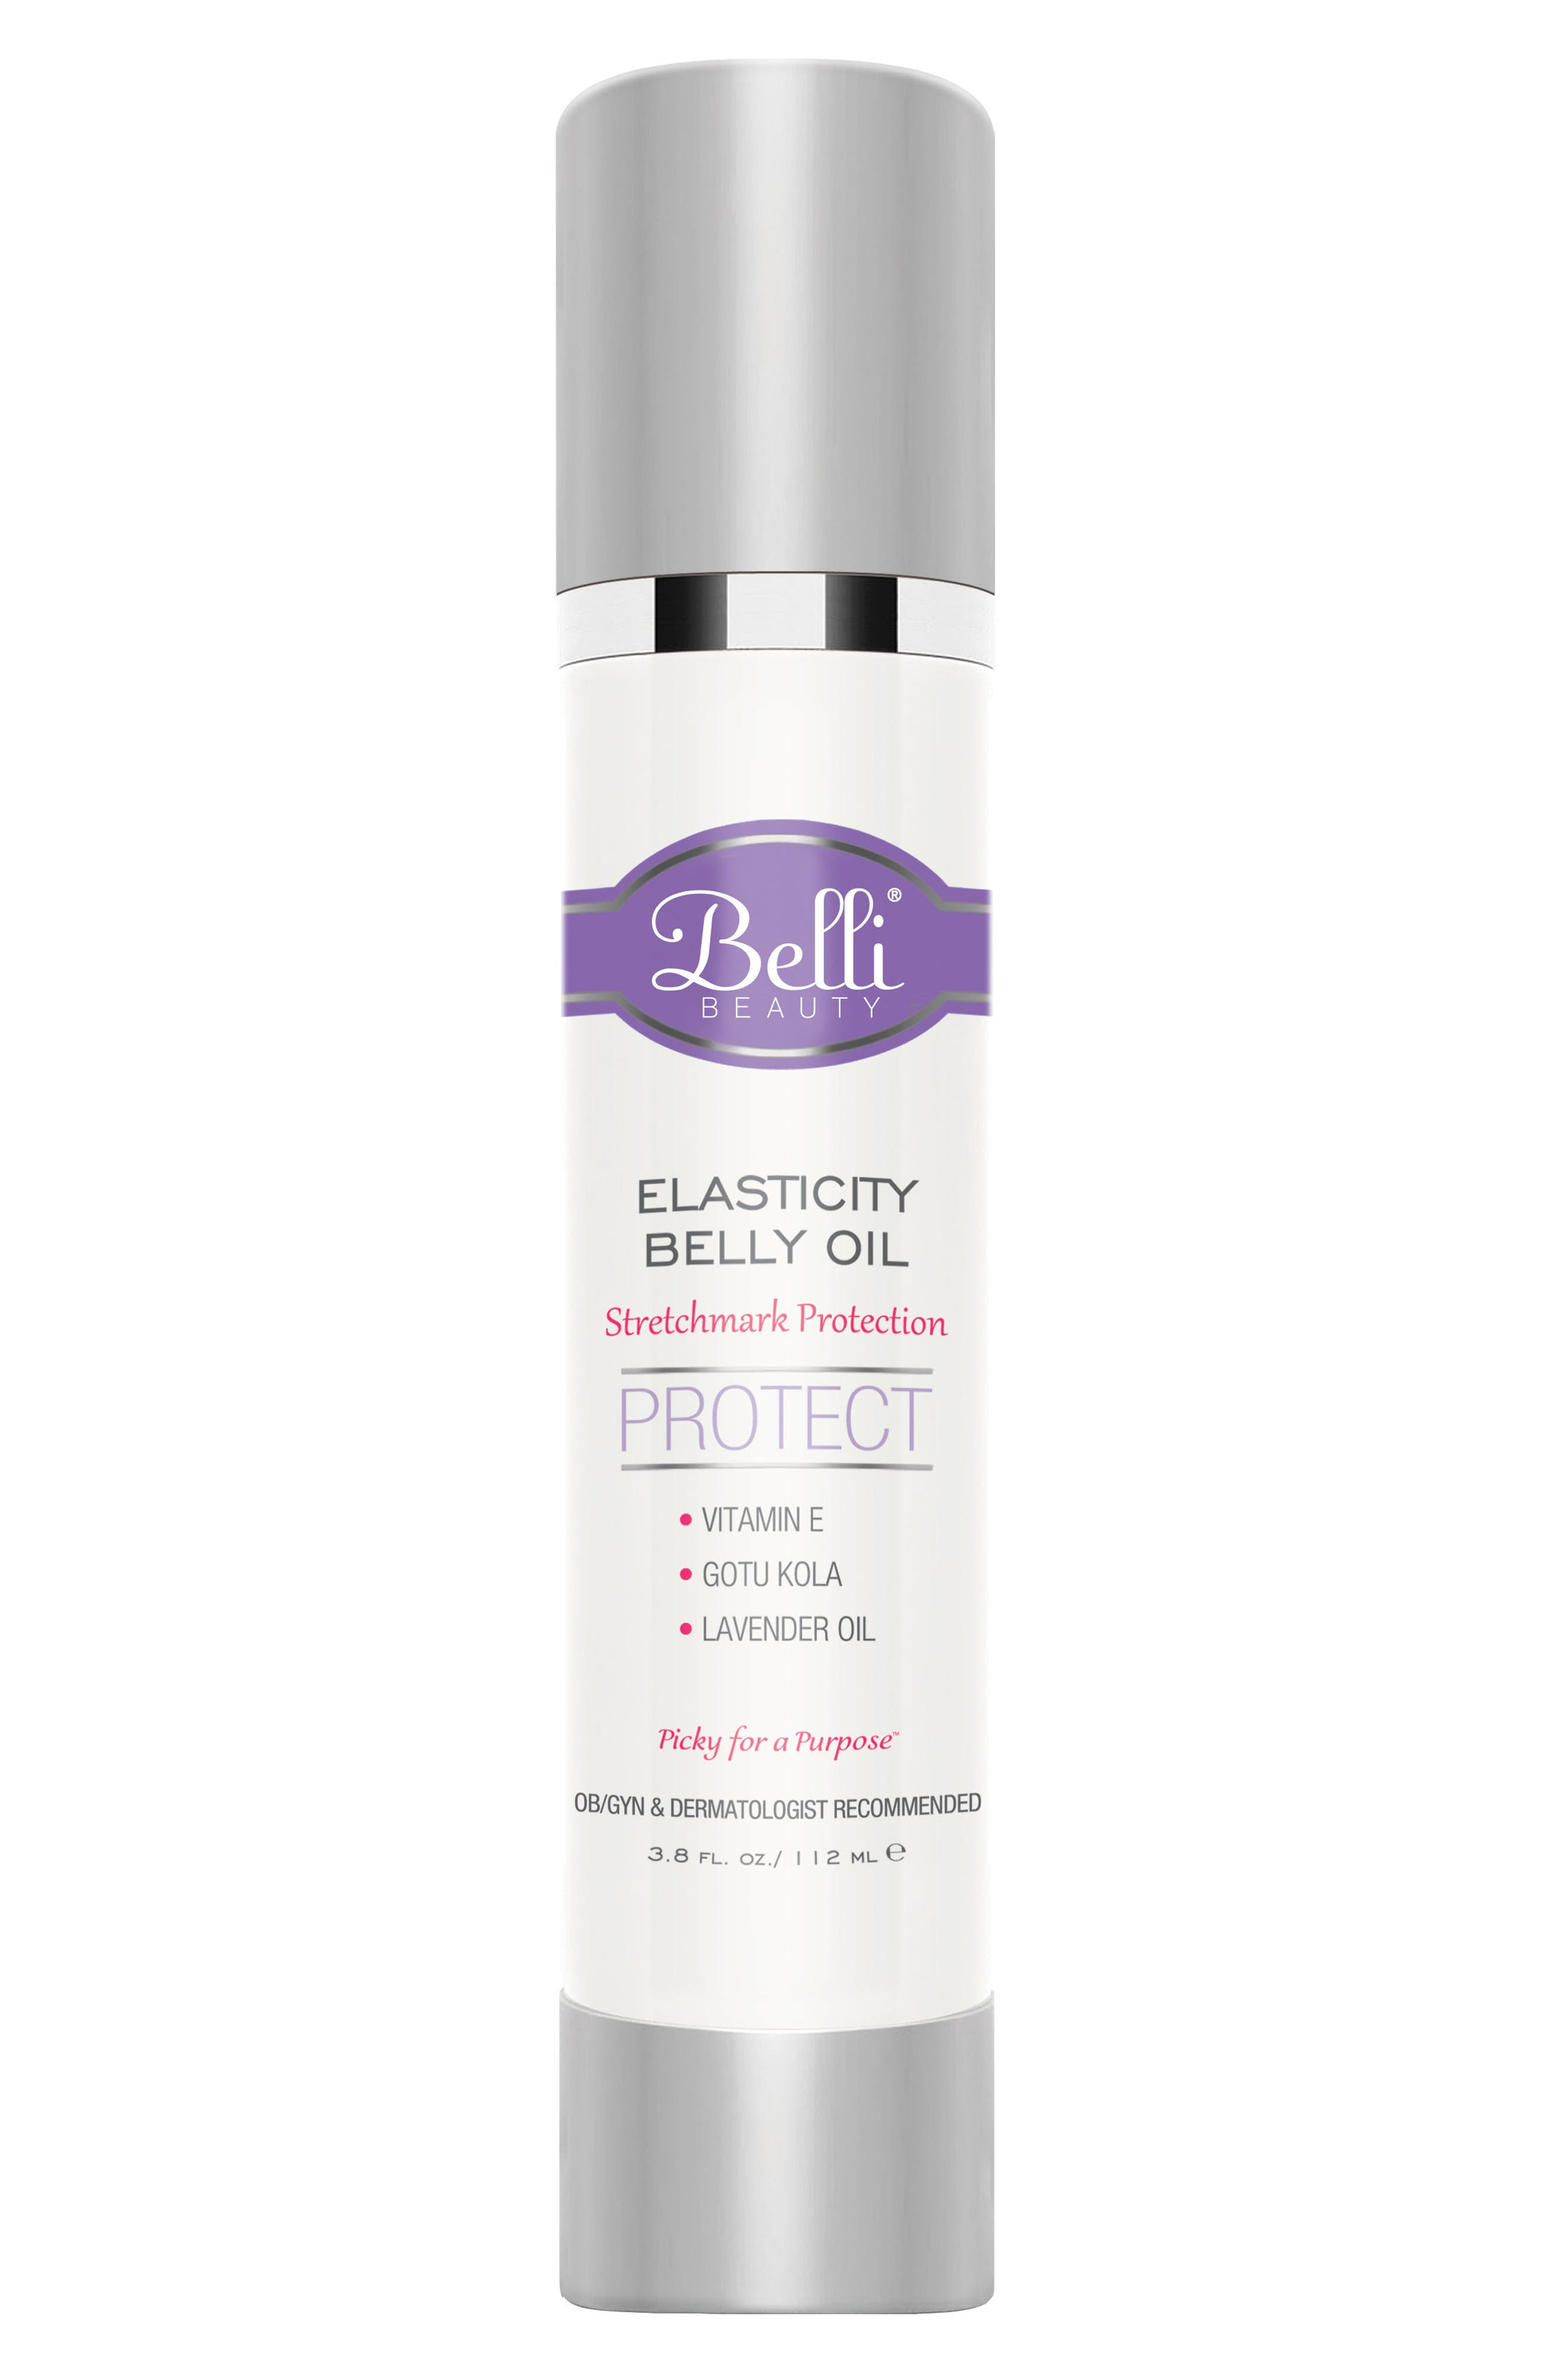 'Elasticity' Belly Oil for Stretch Mark Protection,                             Main thumbnail 1, color,                             White